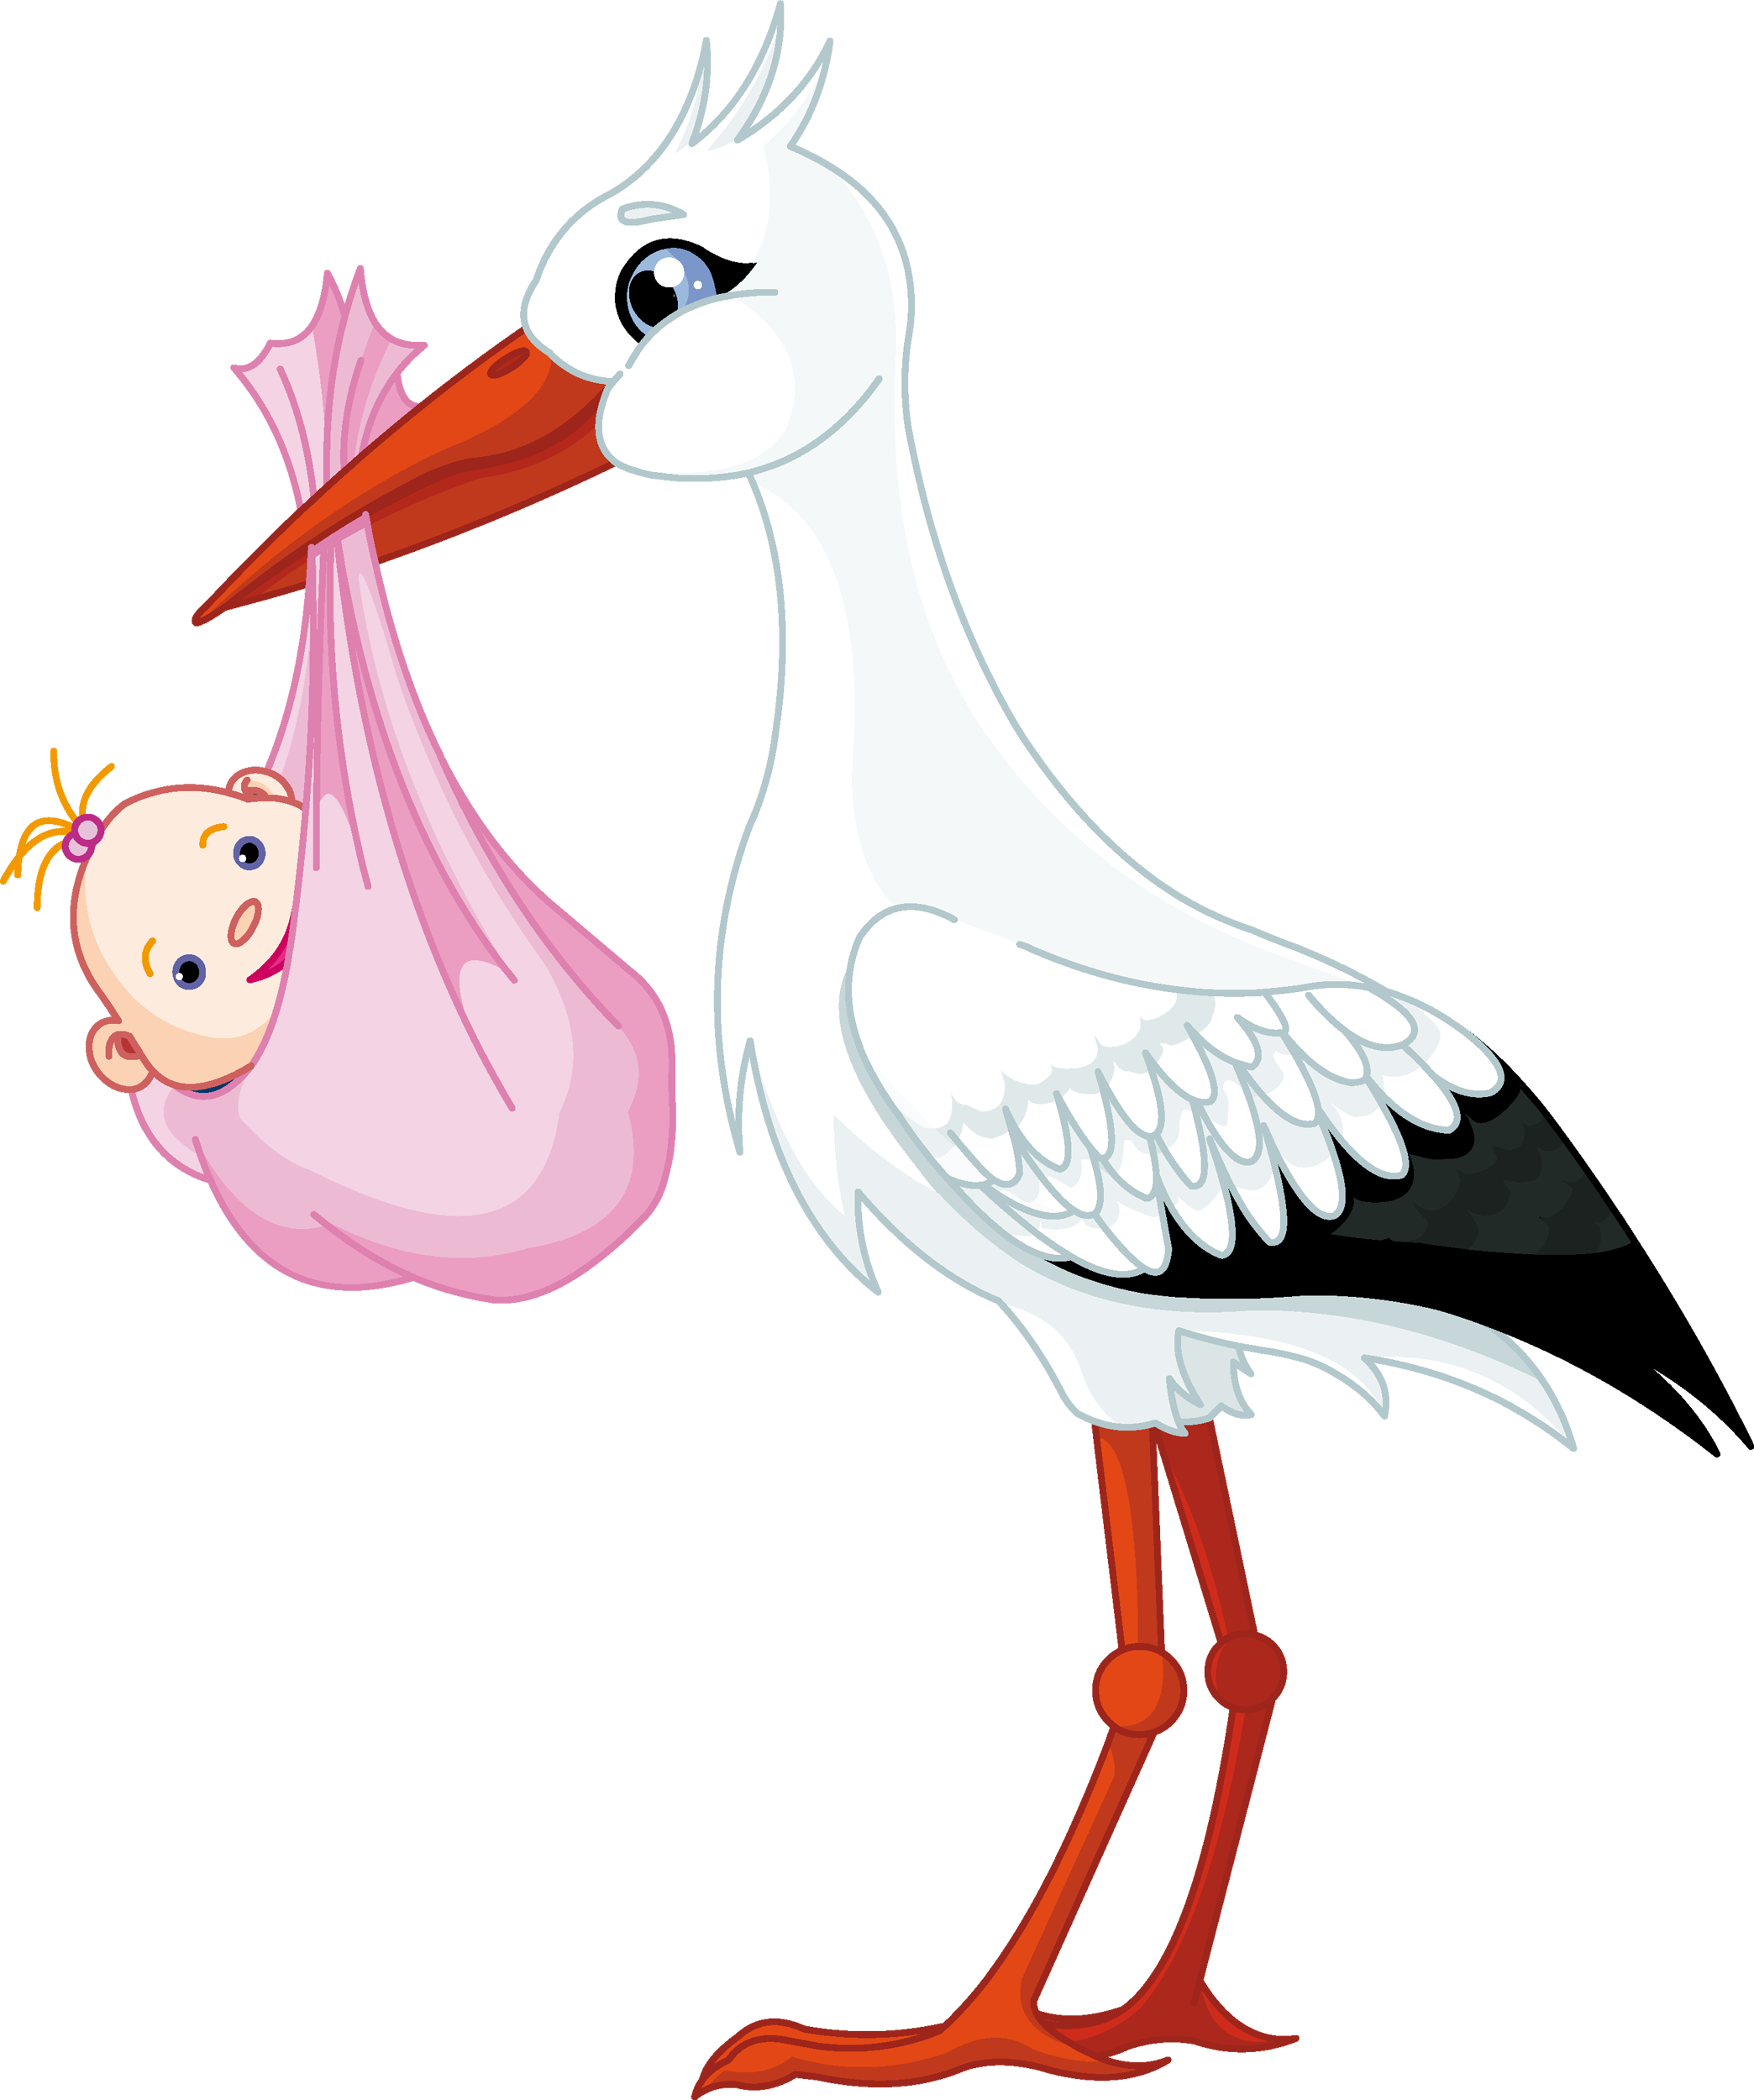 Stork vector clipart. Collection of free clattering